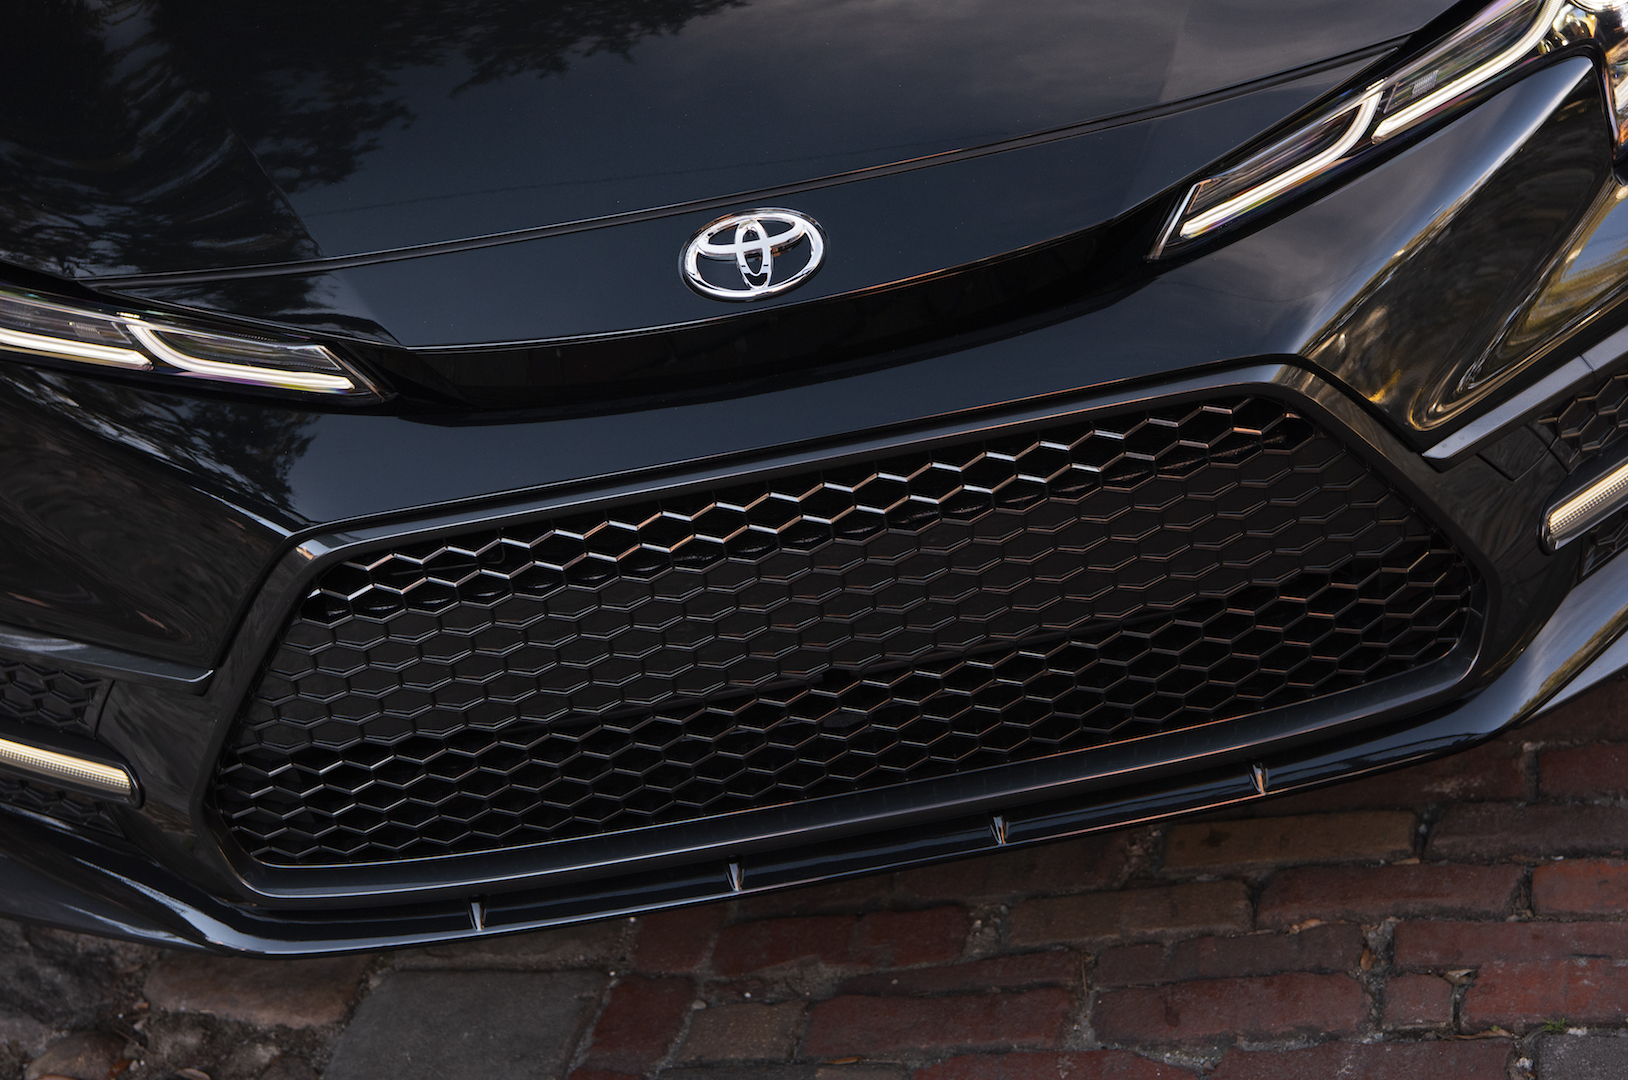 2020_Corolla_XSE_BlackSandPearl_016_v1_current